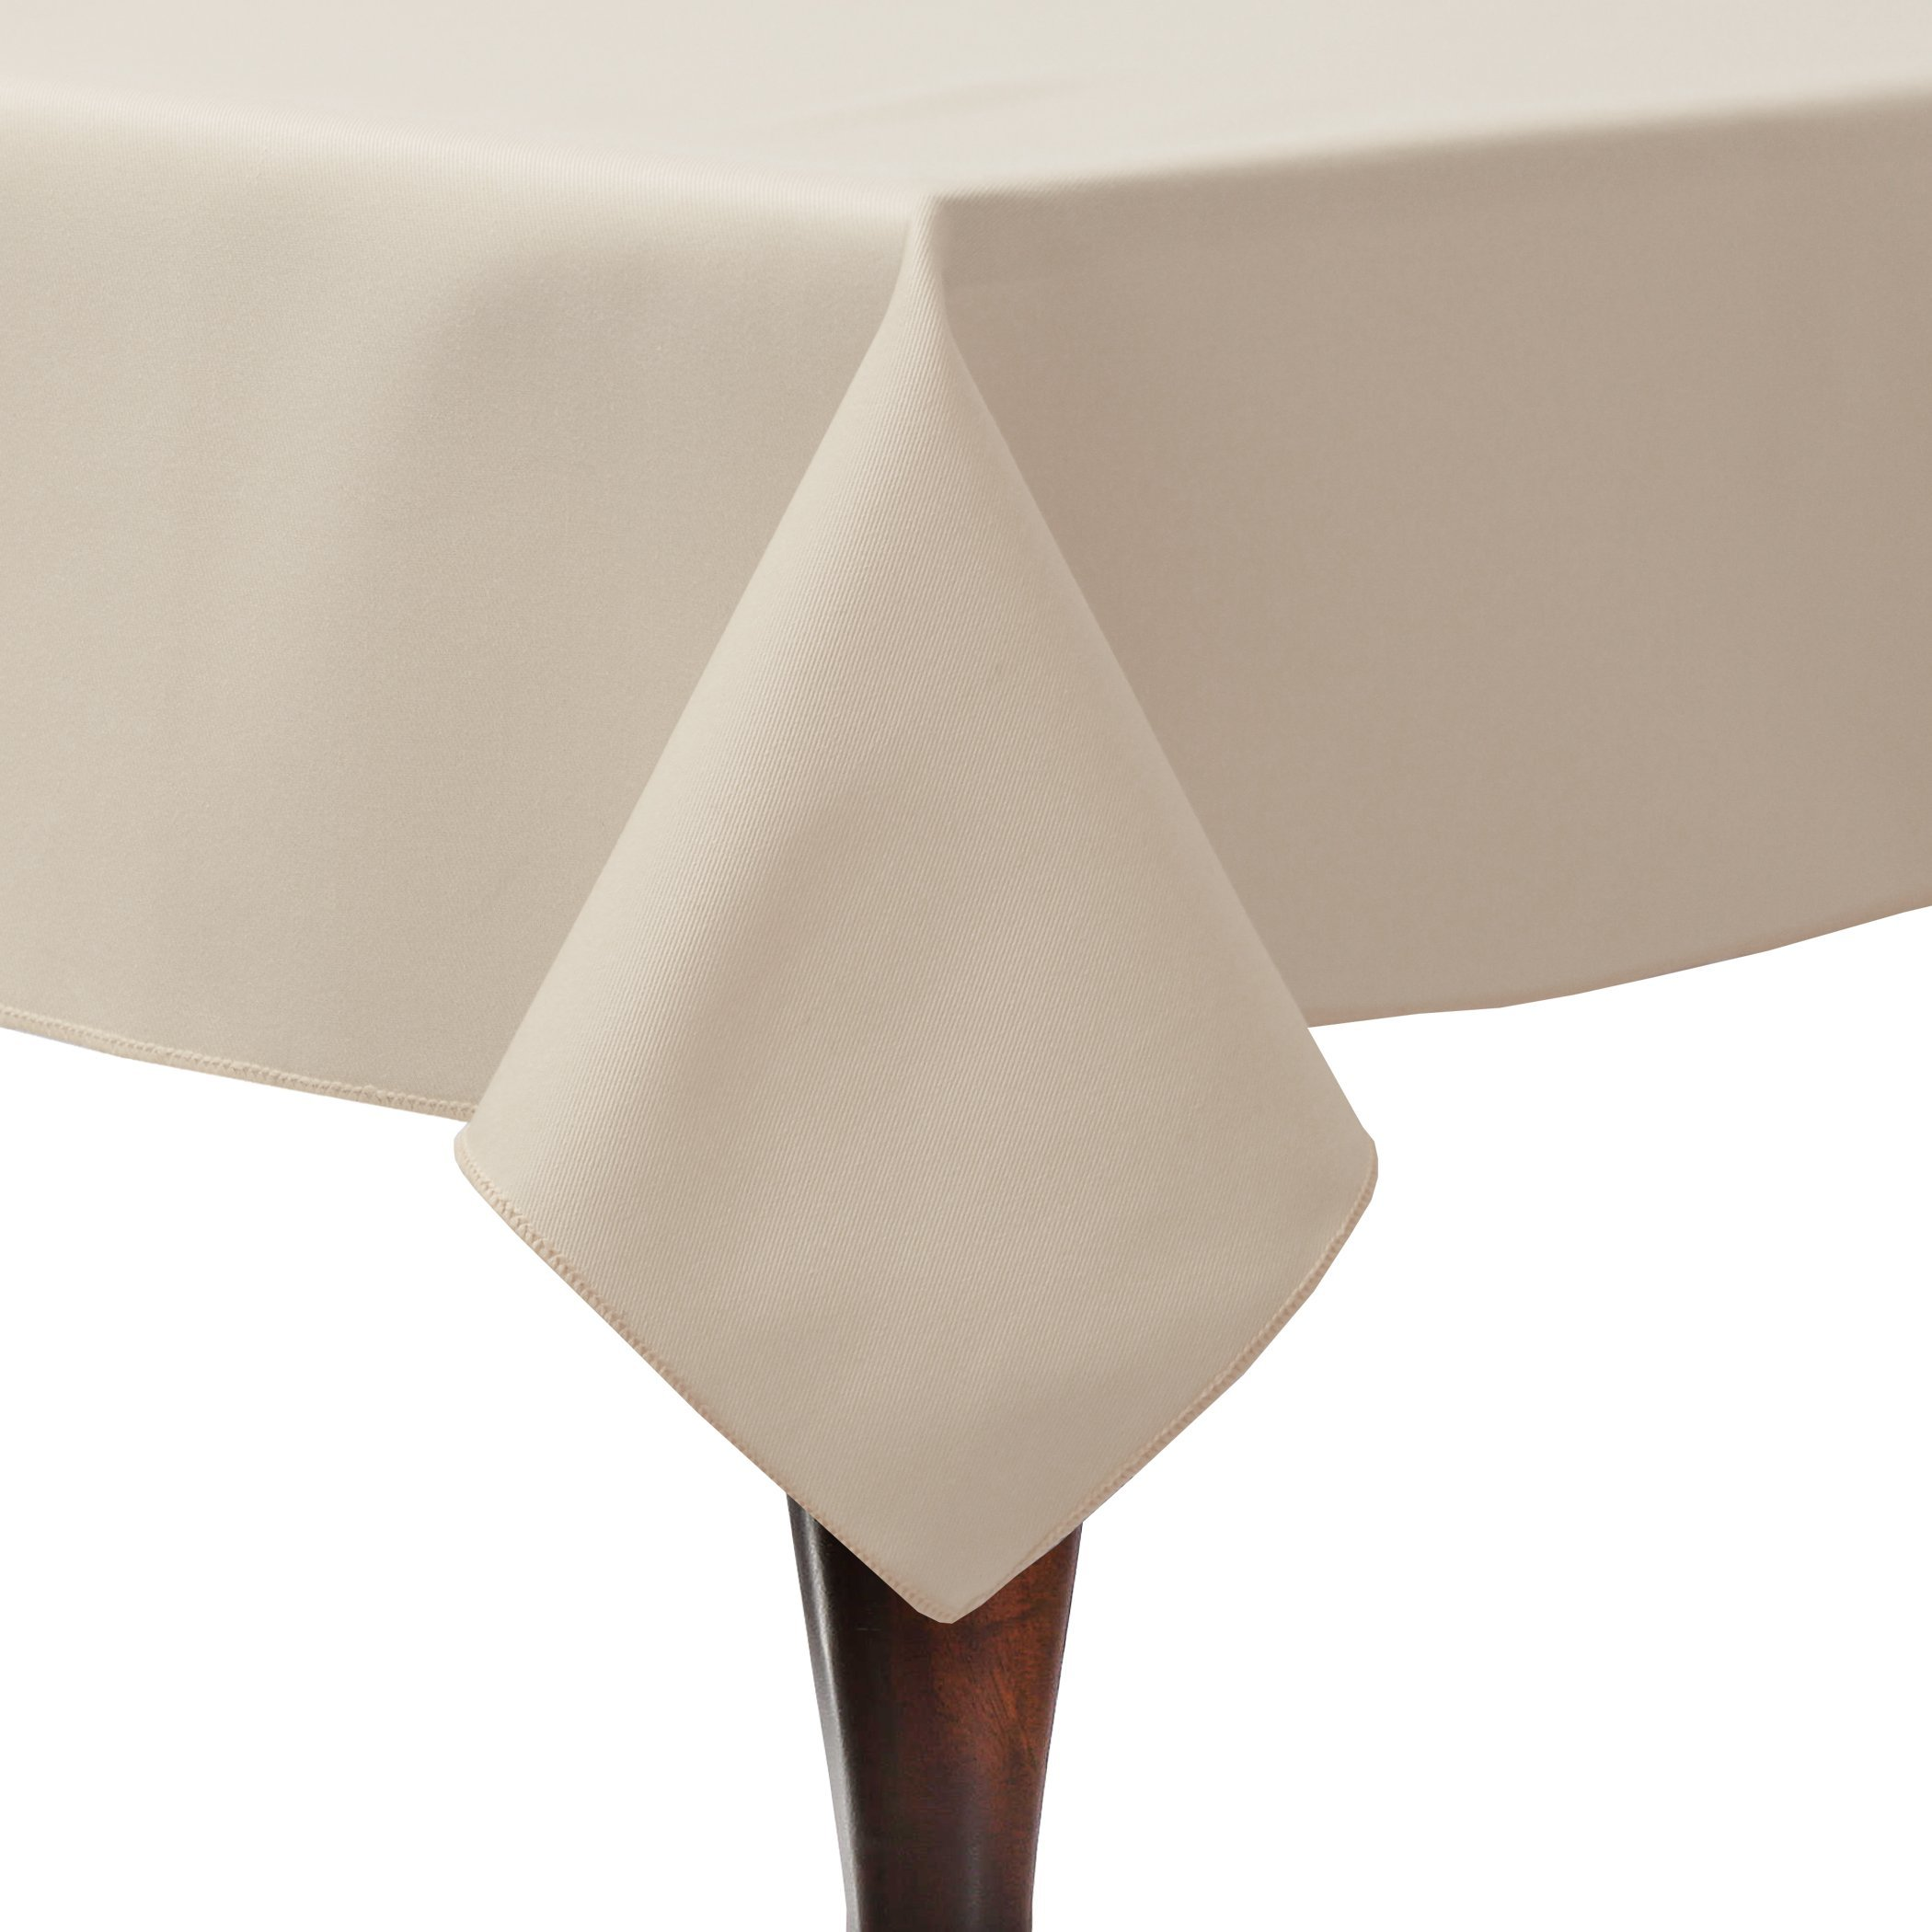 Ultimate Textile (3 Pack) Poly-cotton Twill 60 x 90-Inch Rectangular Tablecloth - for Restaurant and Catering, Hotel or Home Dining use, Beige